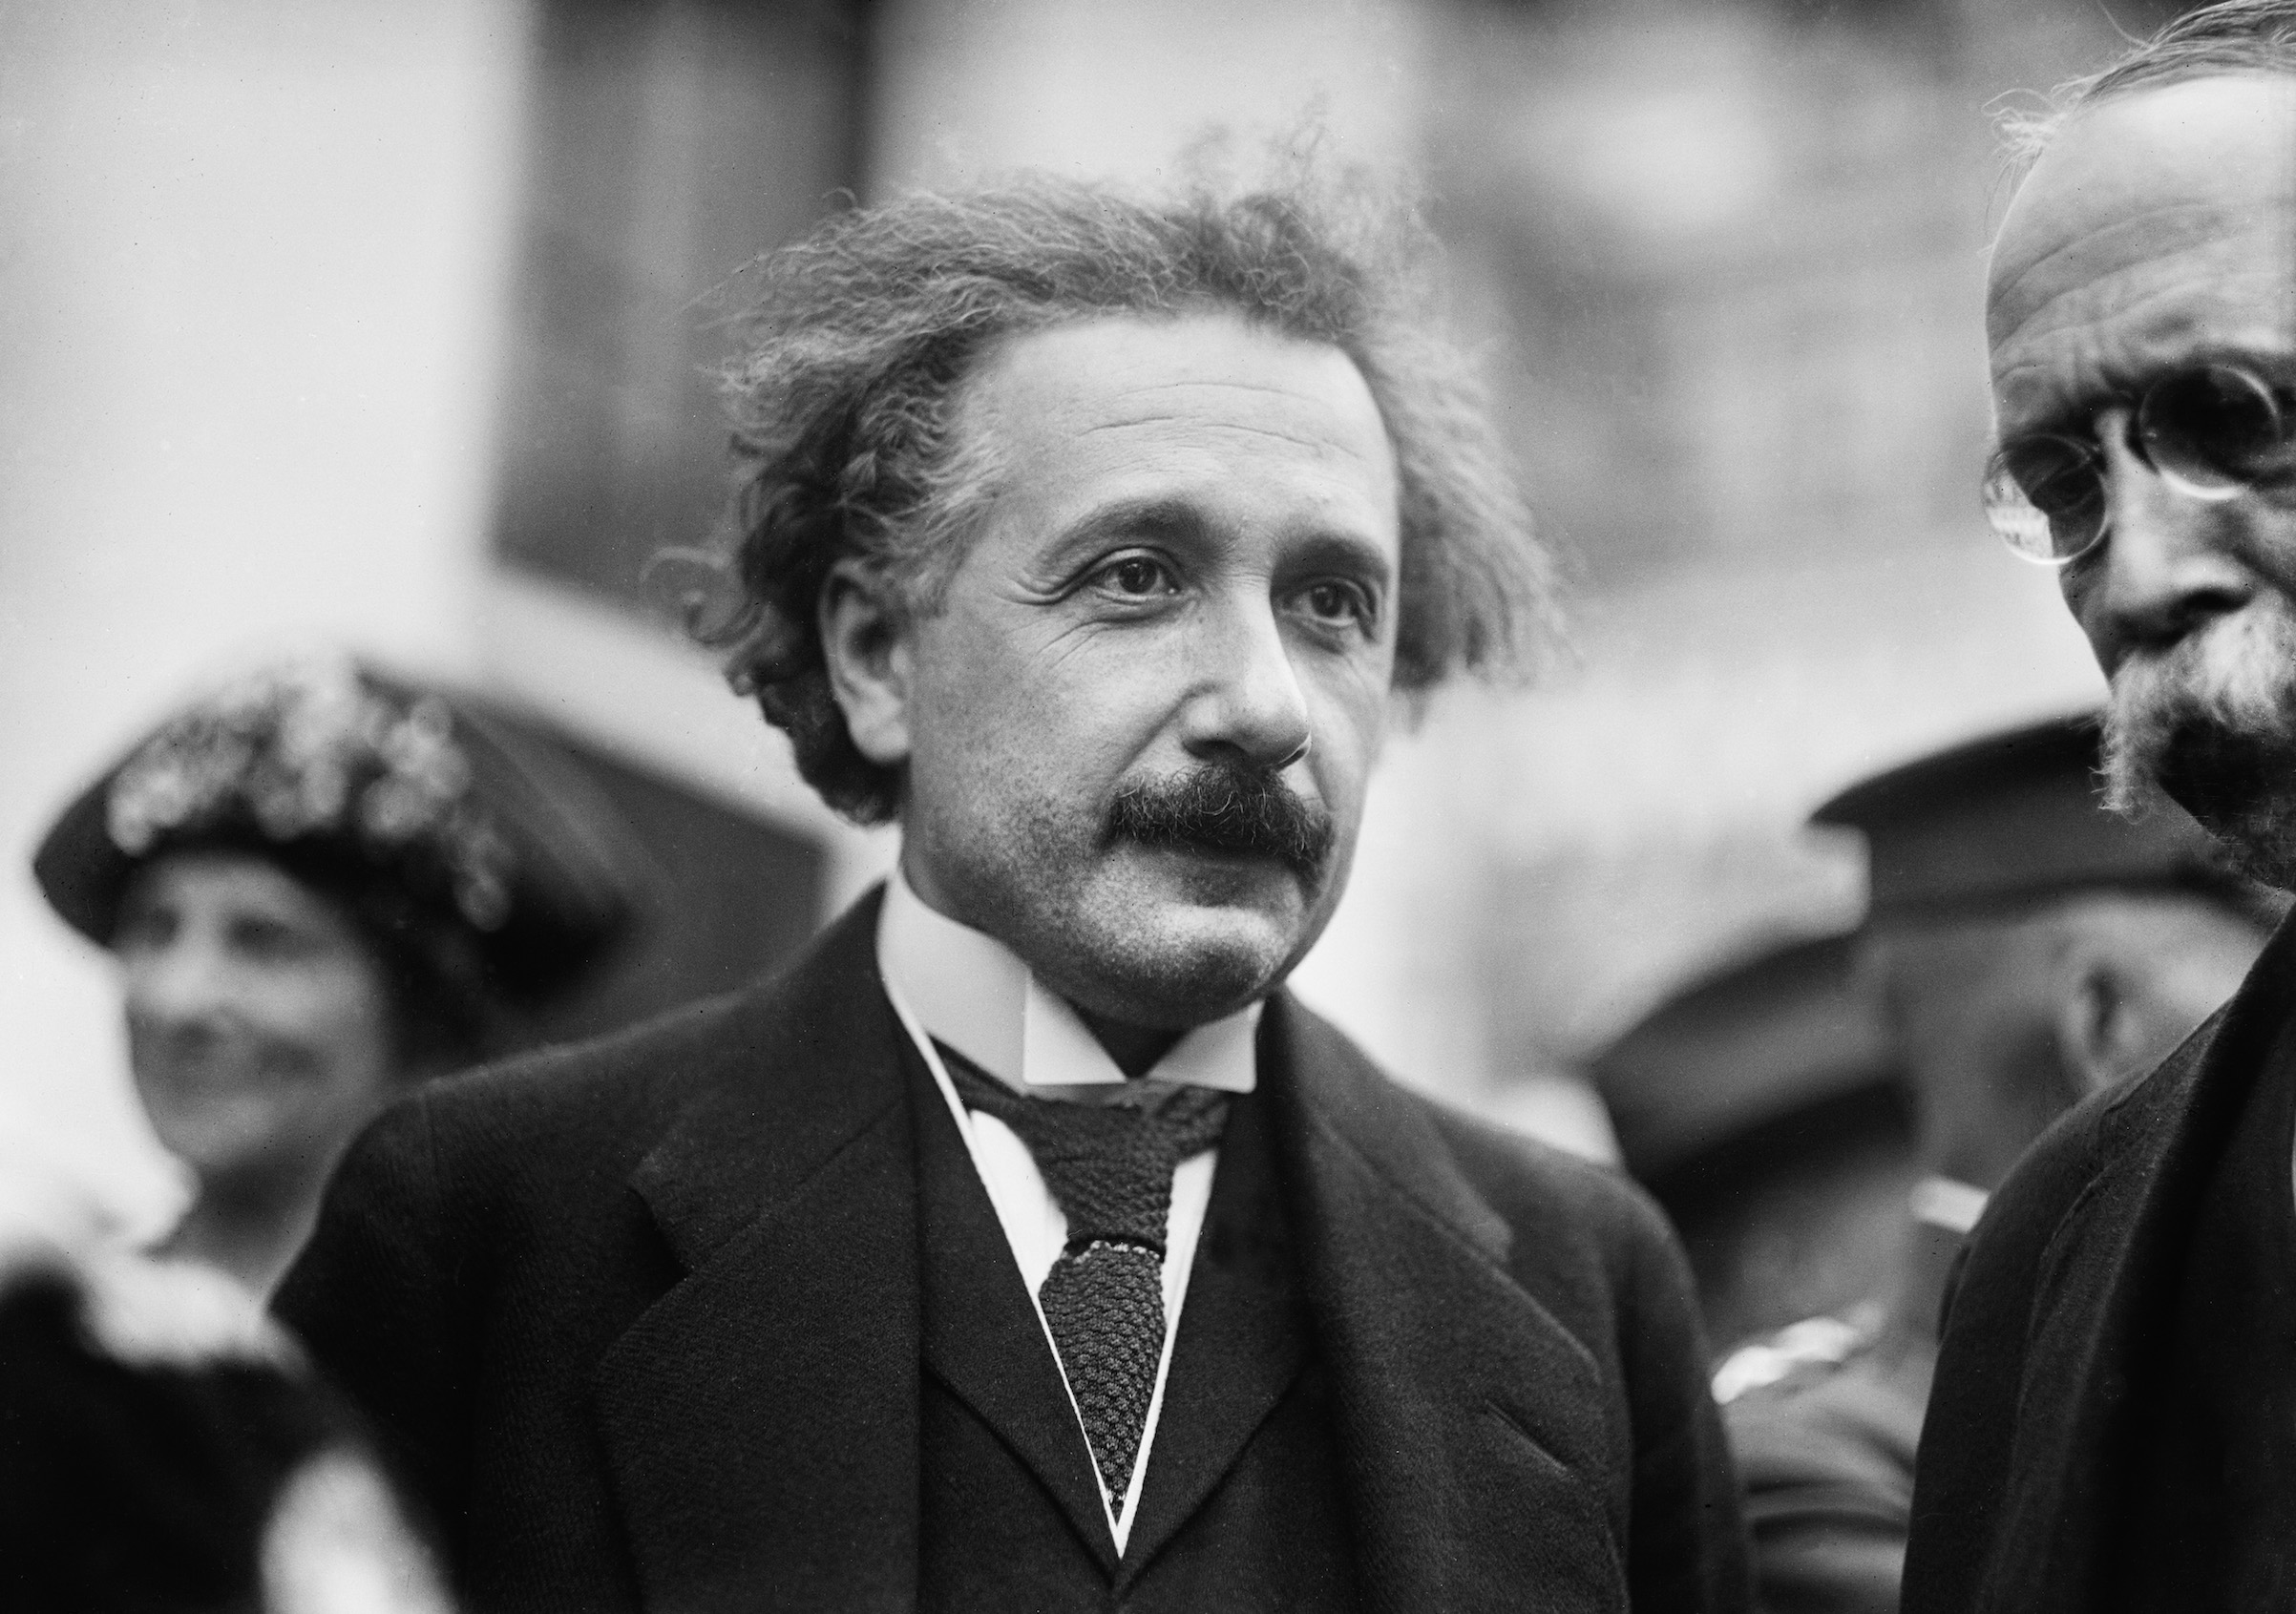 Albert Einstein, while visiting the White House in Washington, D.C., in the early 1920s.